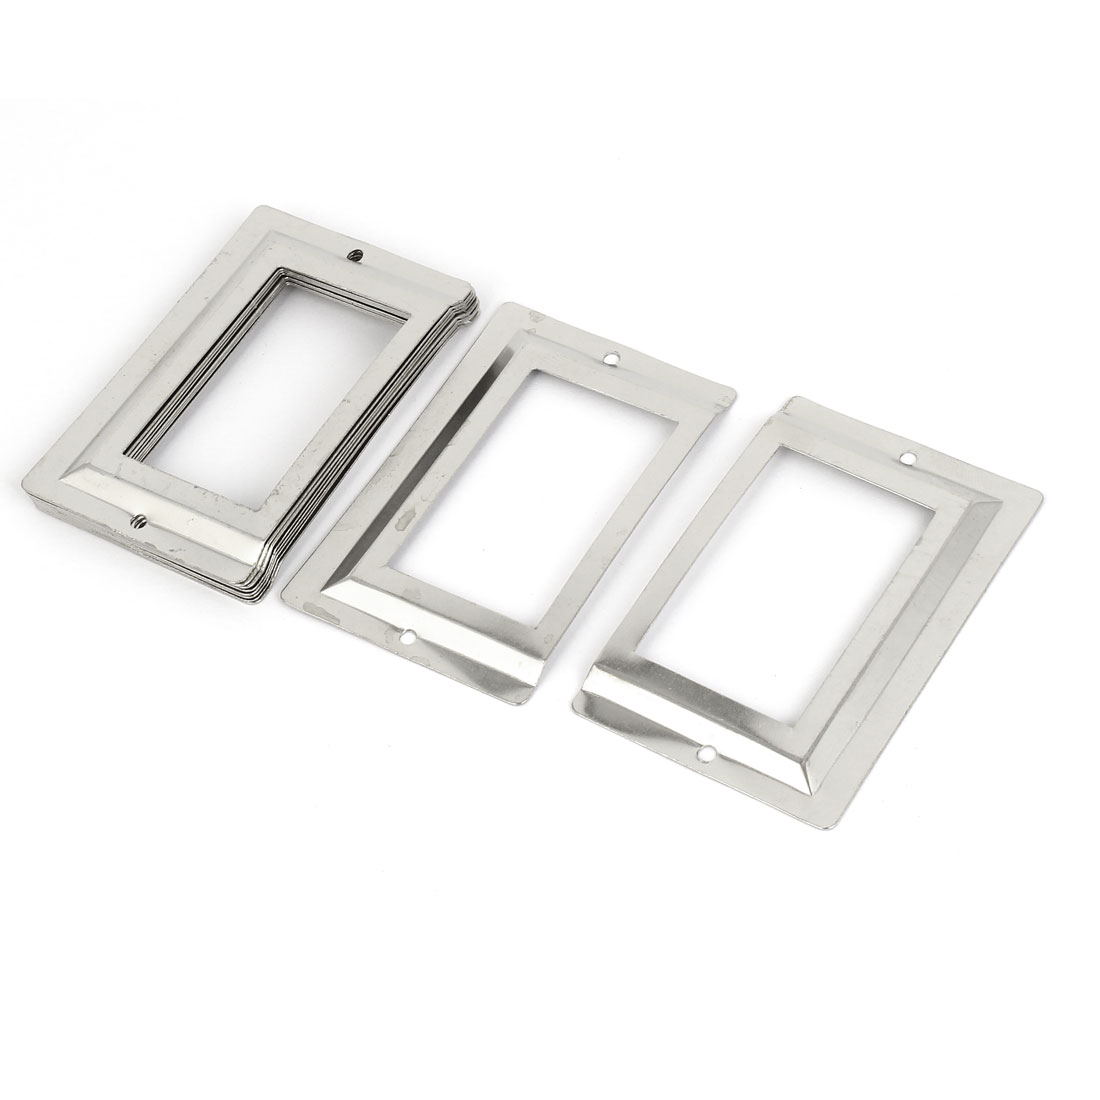 Post Office Library File Drawer Metal Tag Label Holder Silver Tone 10pcs